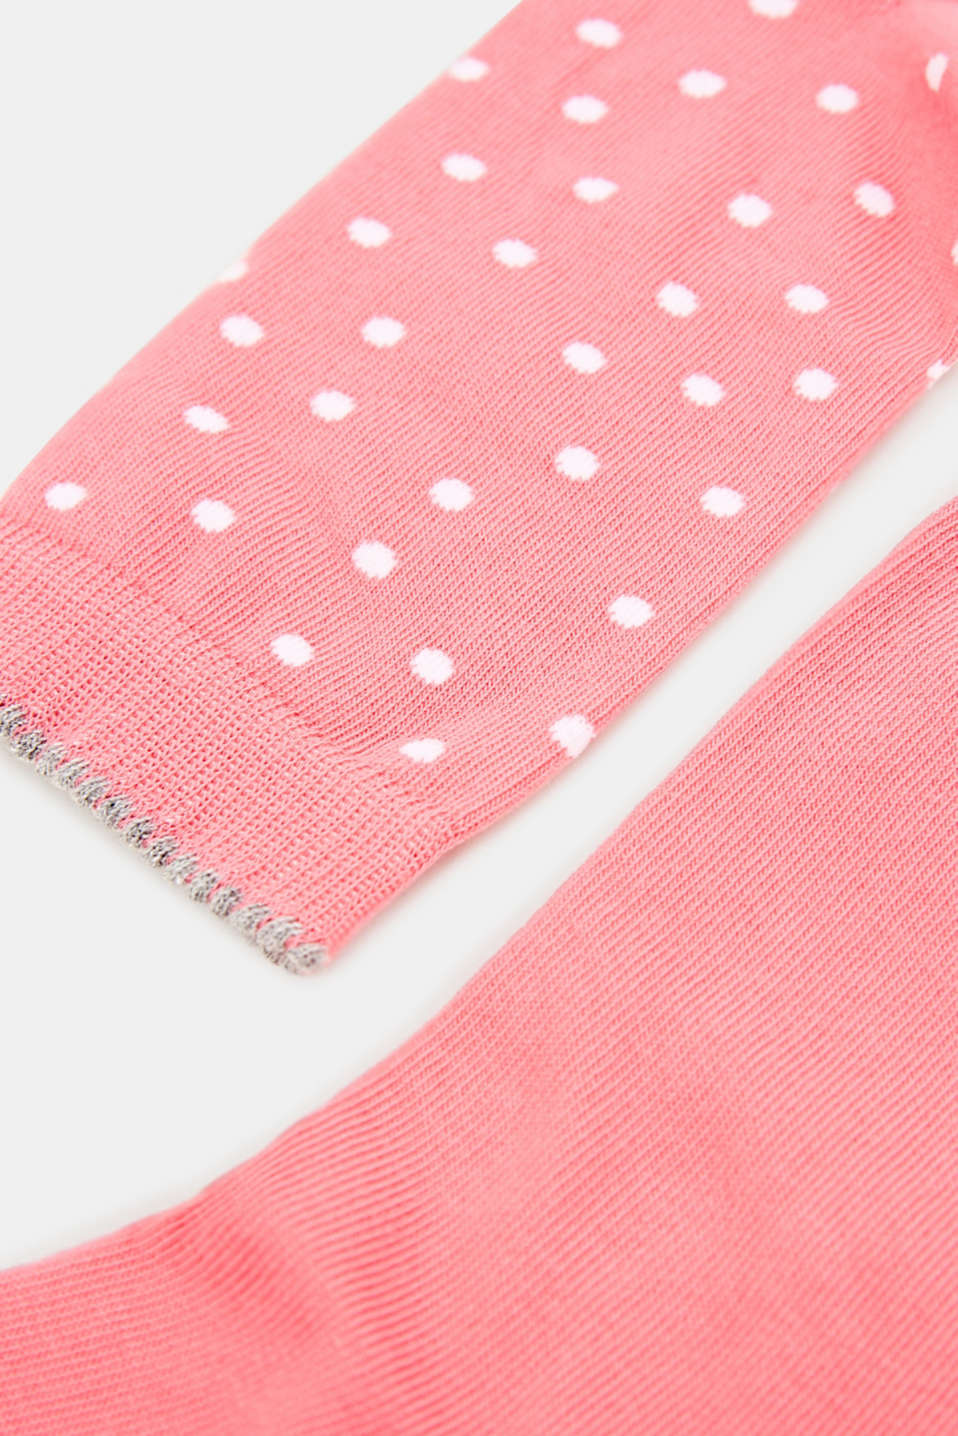 Double pack of socks, plain and with a ladybird motif, FUCHSIA, detail image number 1